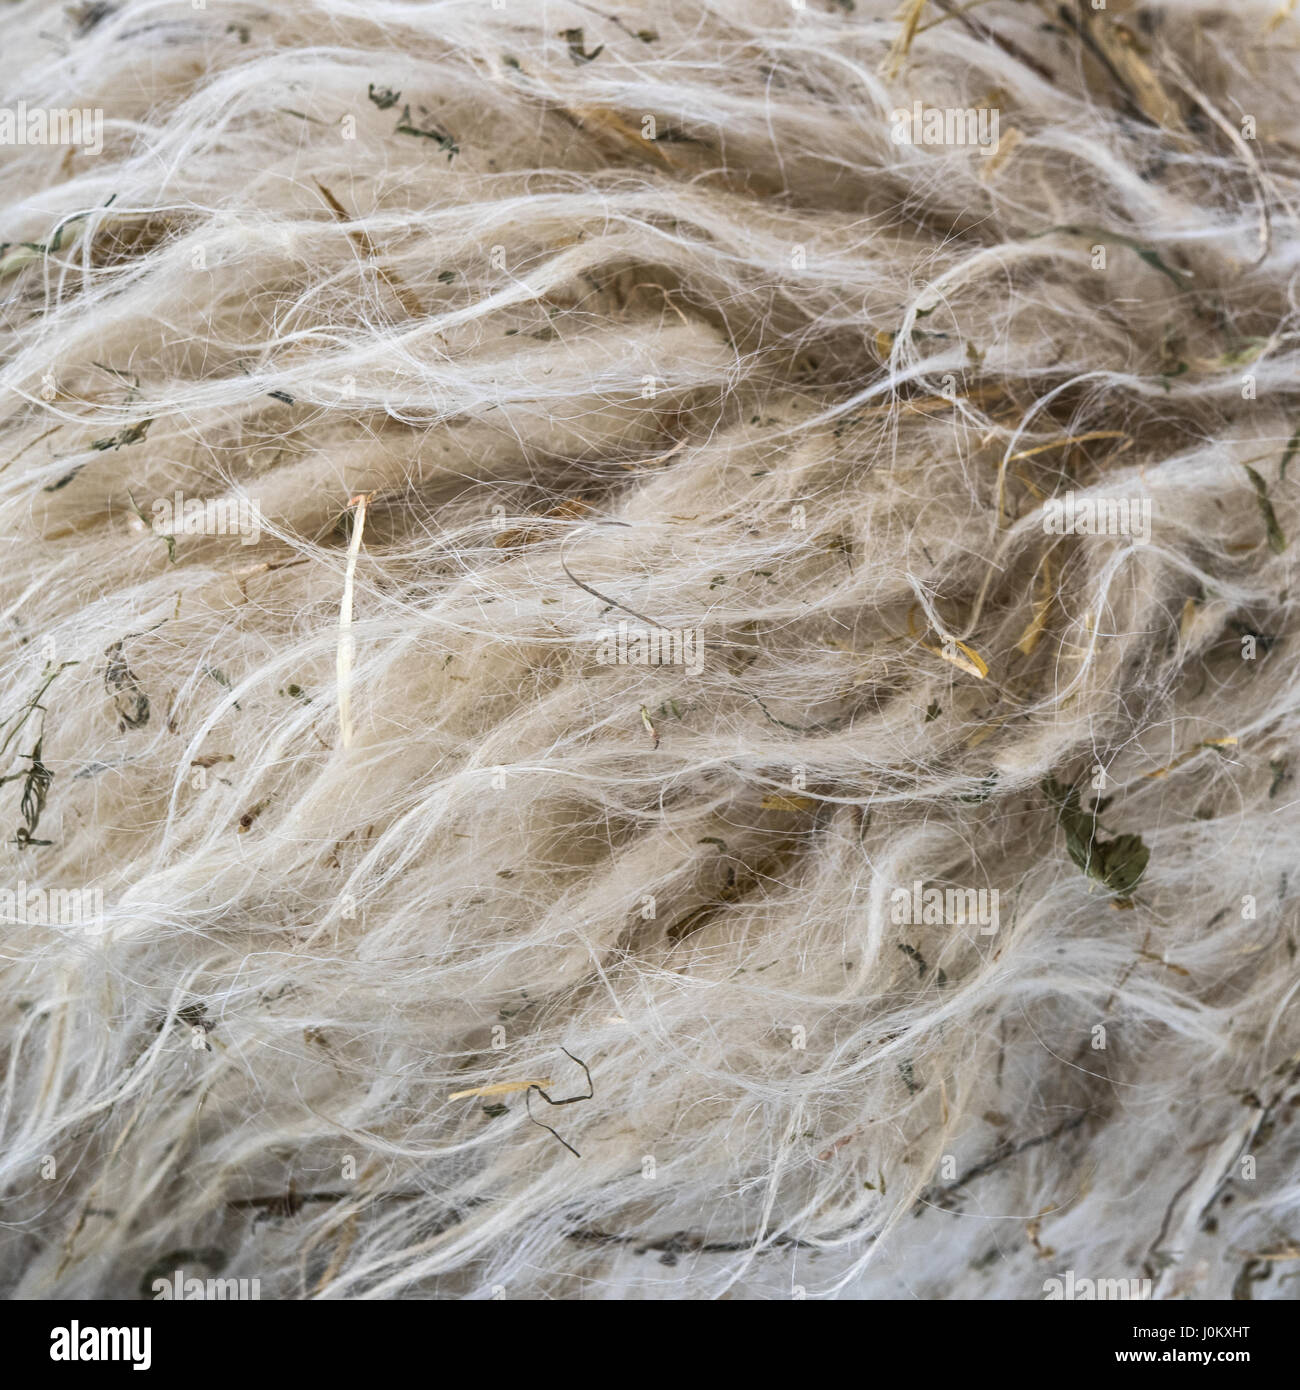 Pile of unprocessed high quality New Zealand wool. - Stock Image